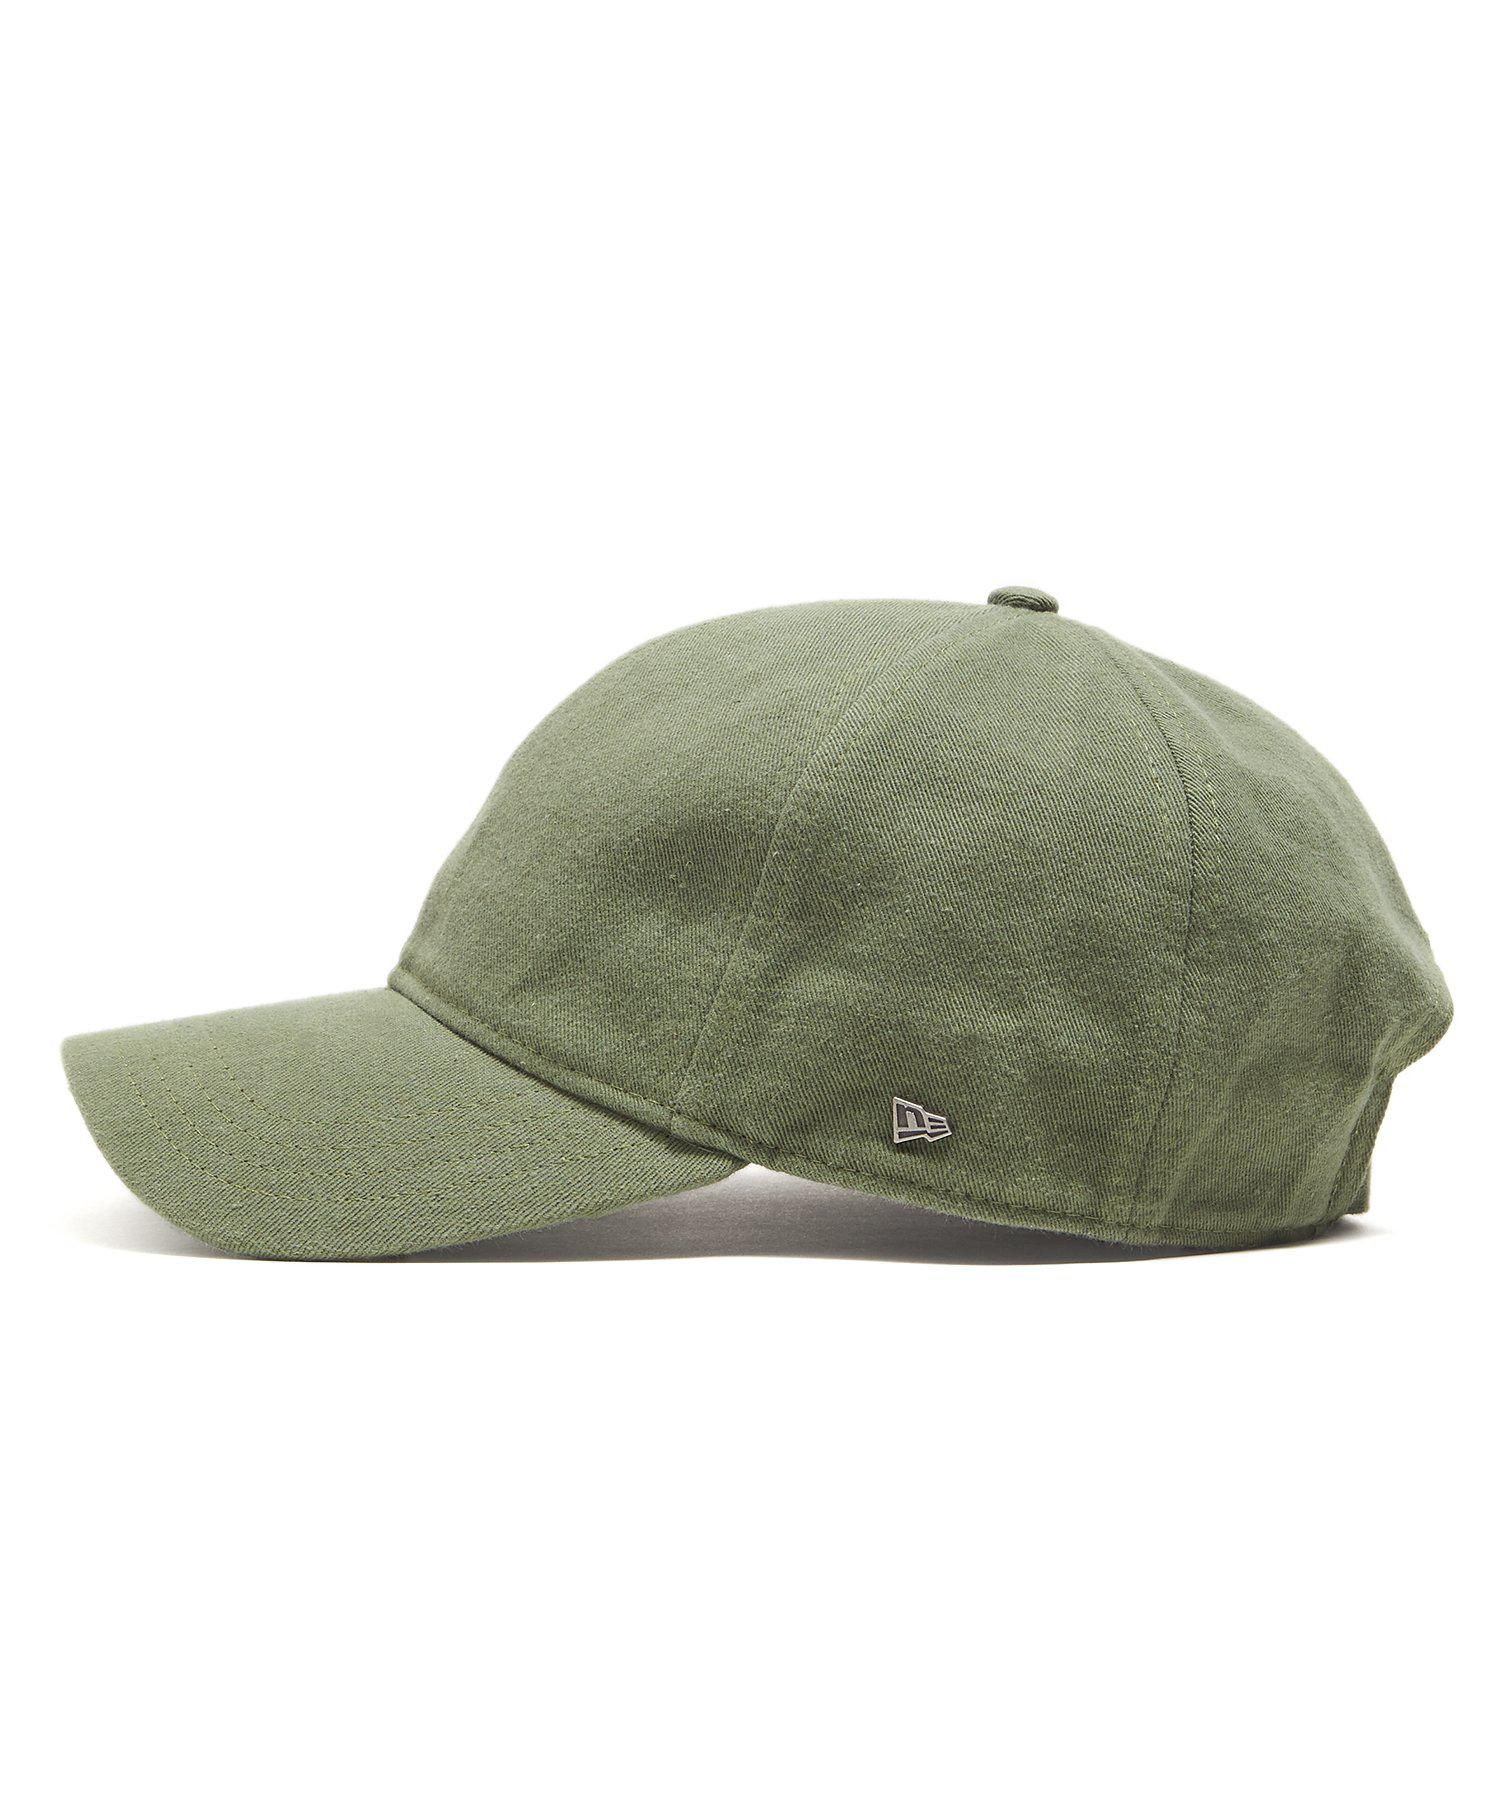 9709b9268df ... cheap lyst new era hats dad hat in olive selvedge chino in green for  men 492e5